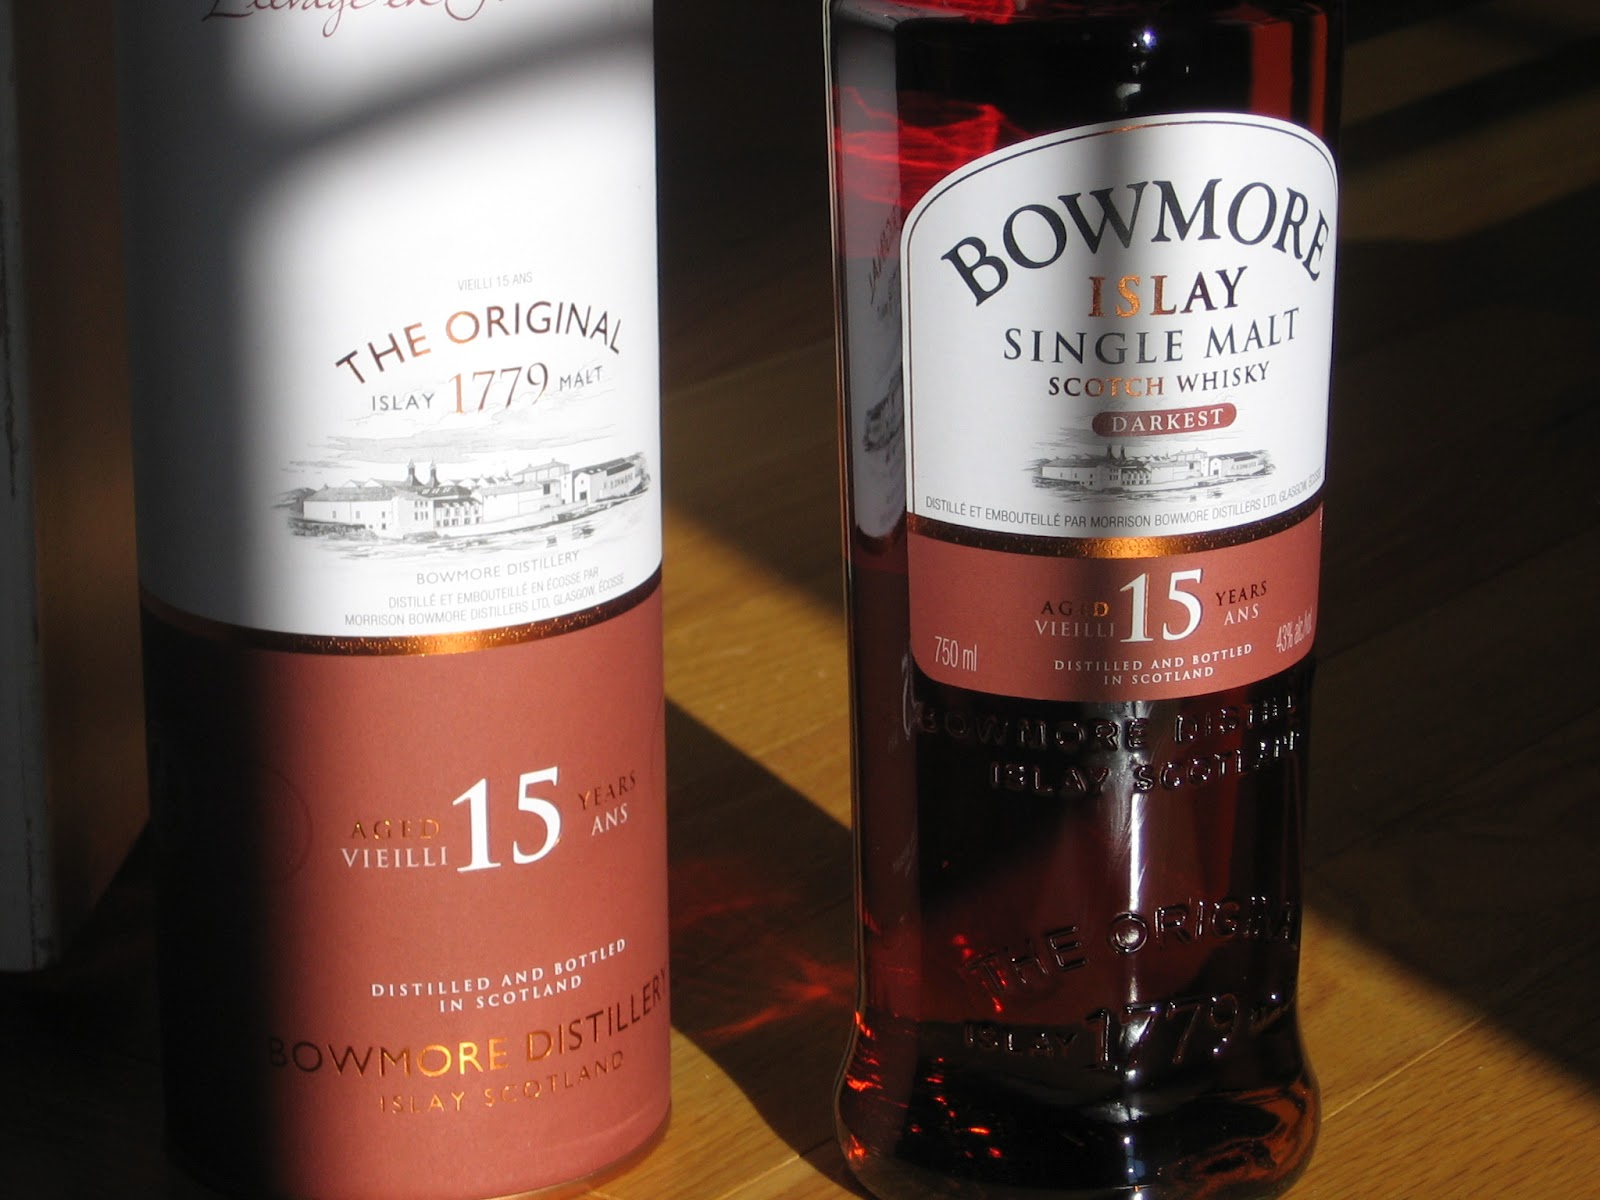 jason 39 s scotch whisky reviews review bowmore 15 year old. Black Bedroom Furniture Sets. Home Design Ideas